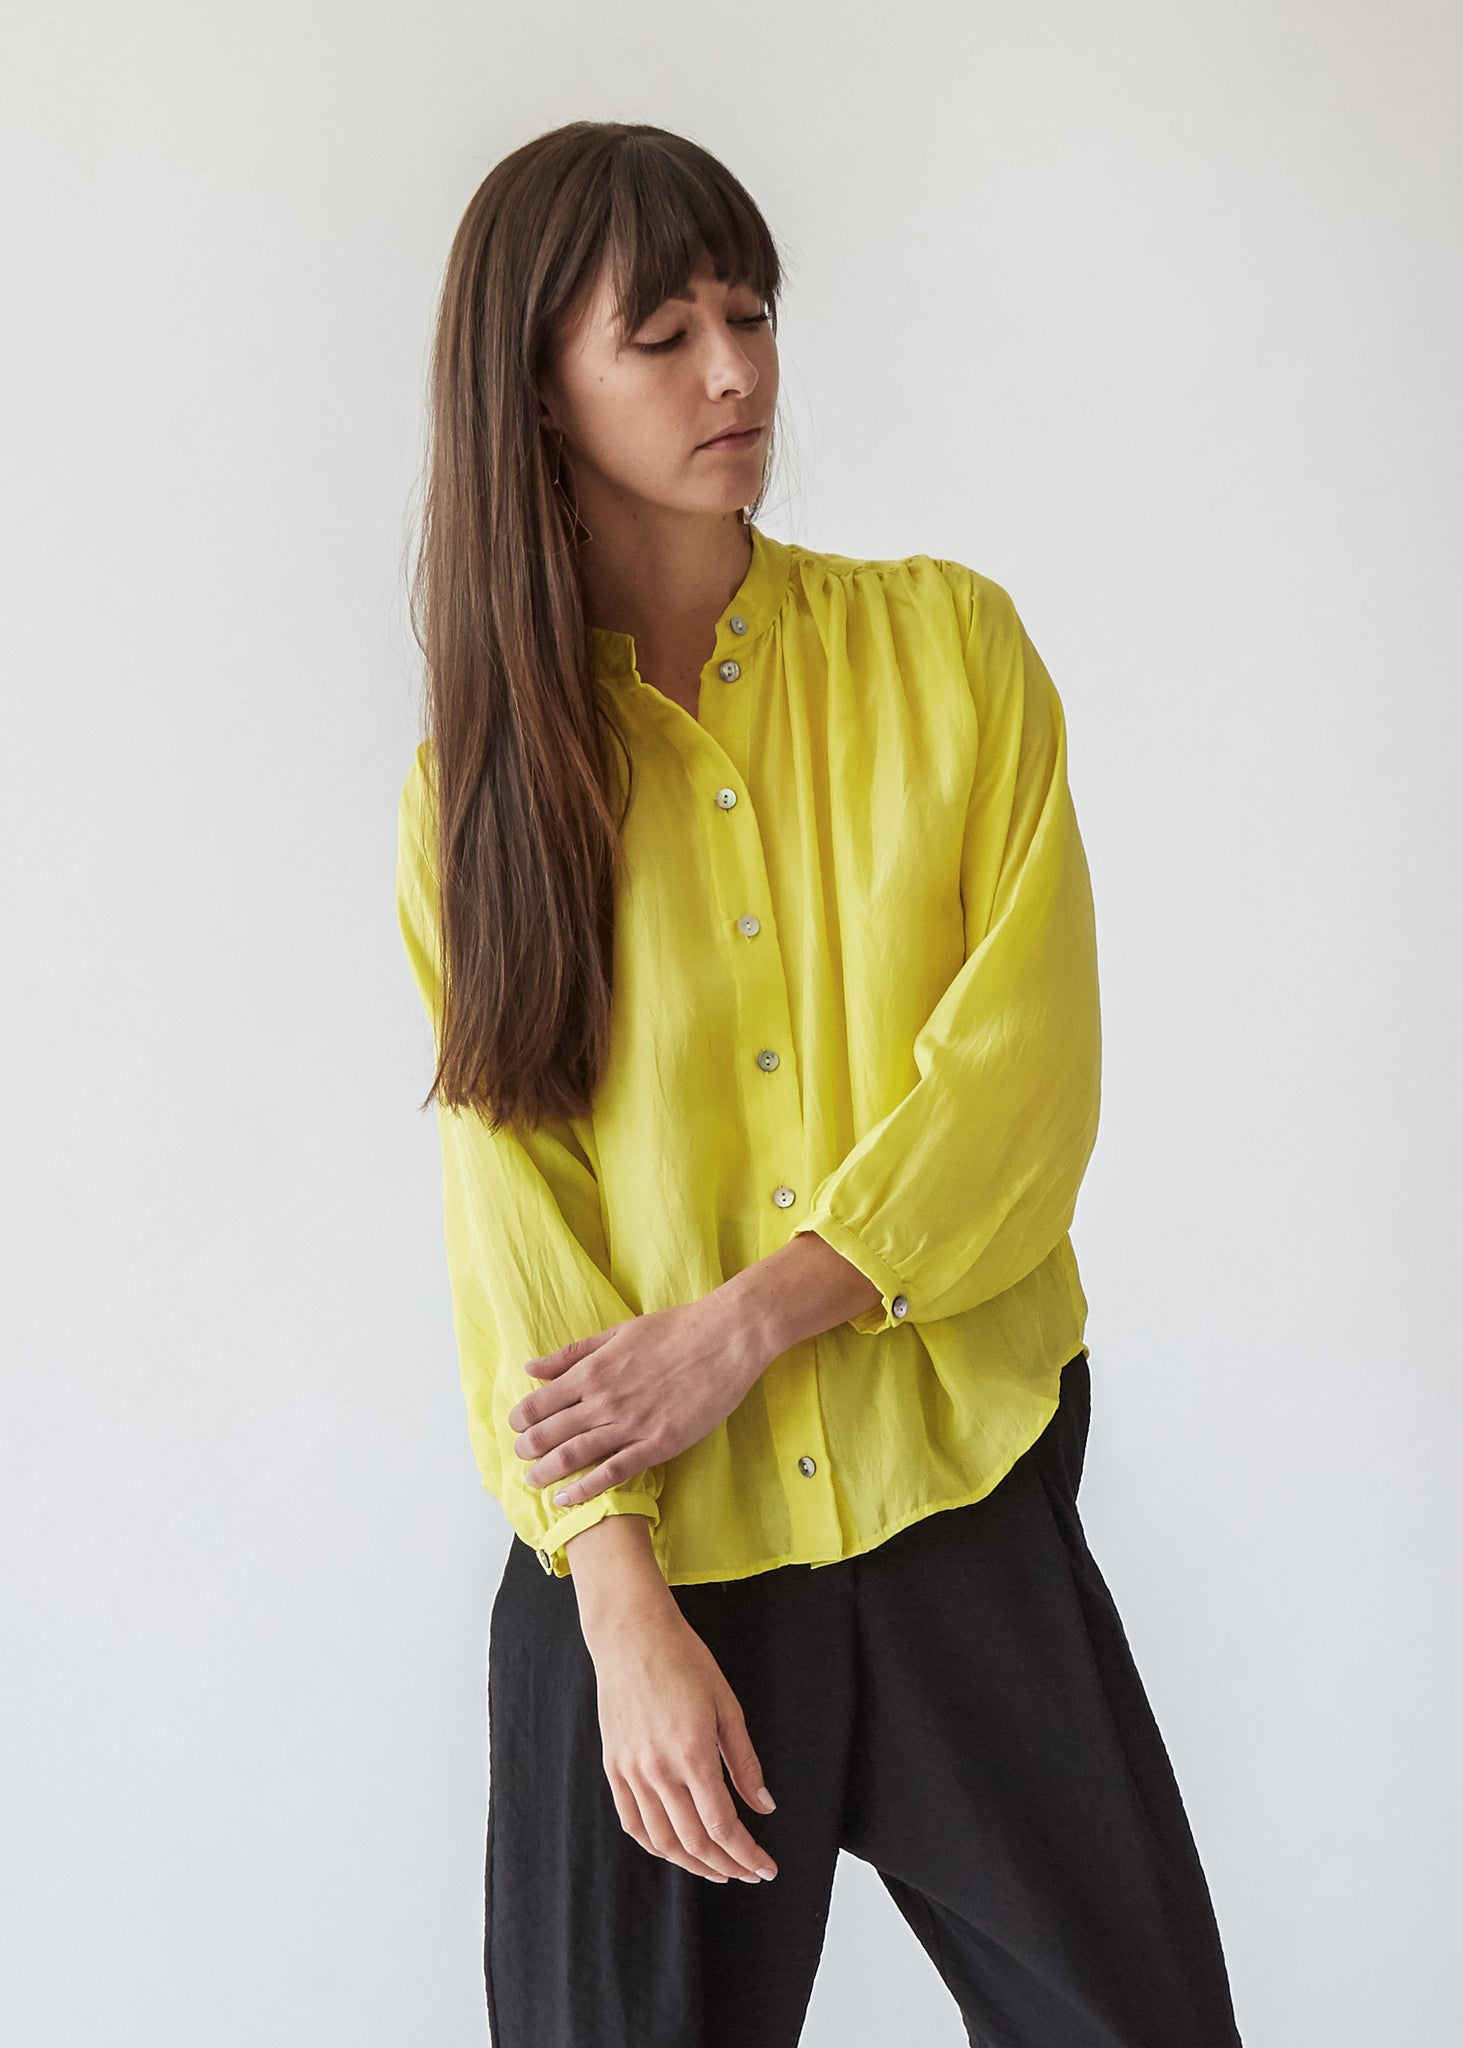 Quinn Blouse in Yellow - SOLD OUT